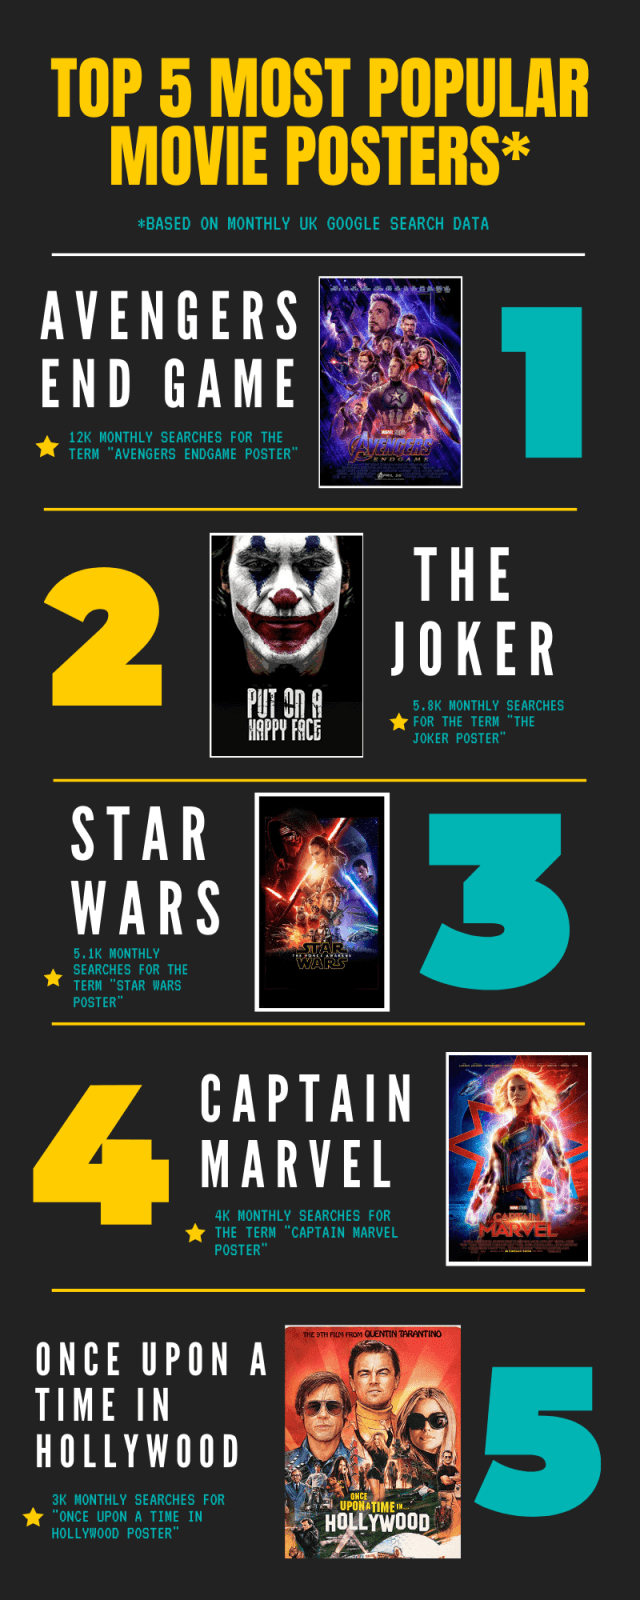 Most popular movie posters in the UK